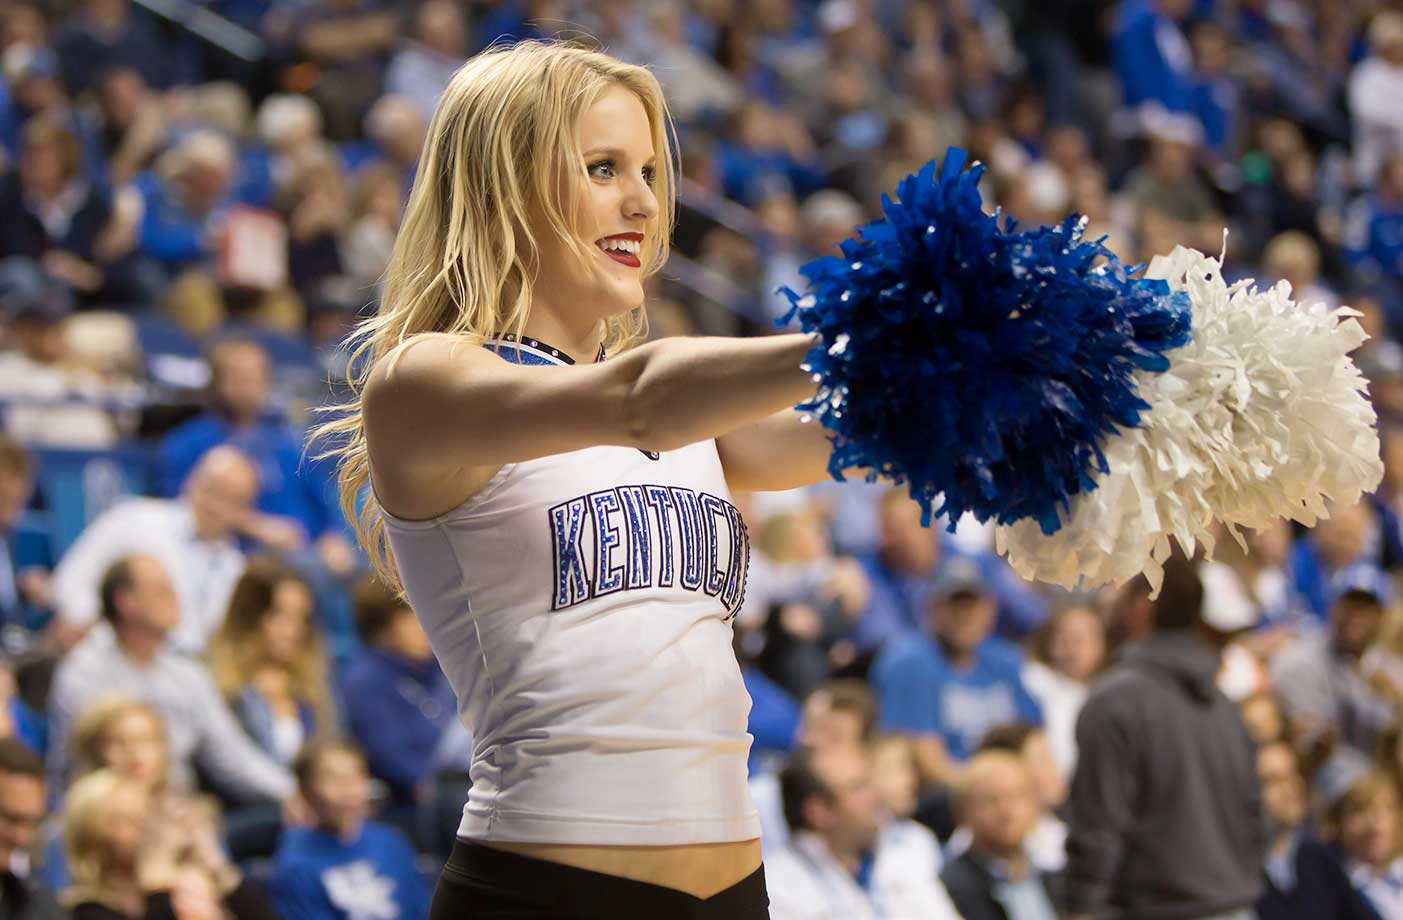 A Kentucky Wildcats dance team member during a home game against the Tennessee Volunteers.